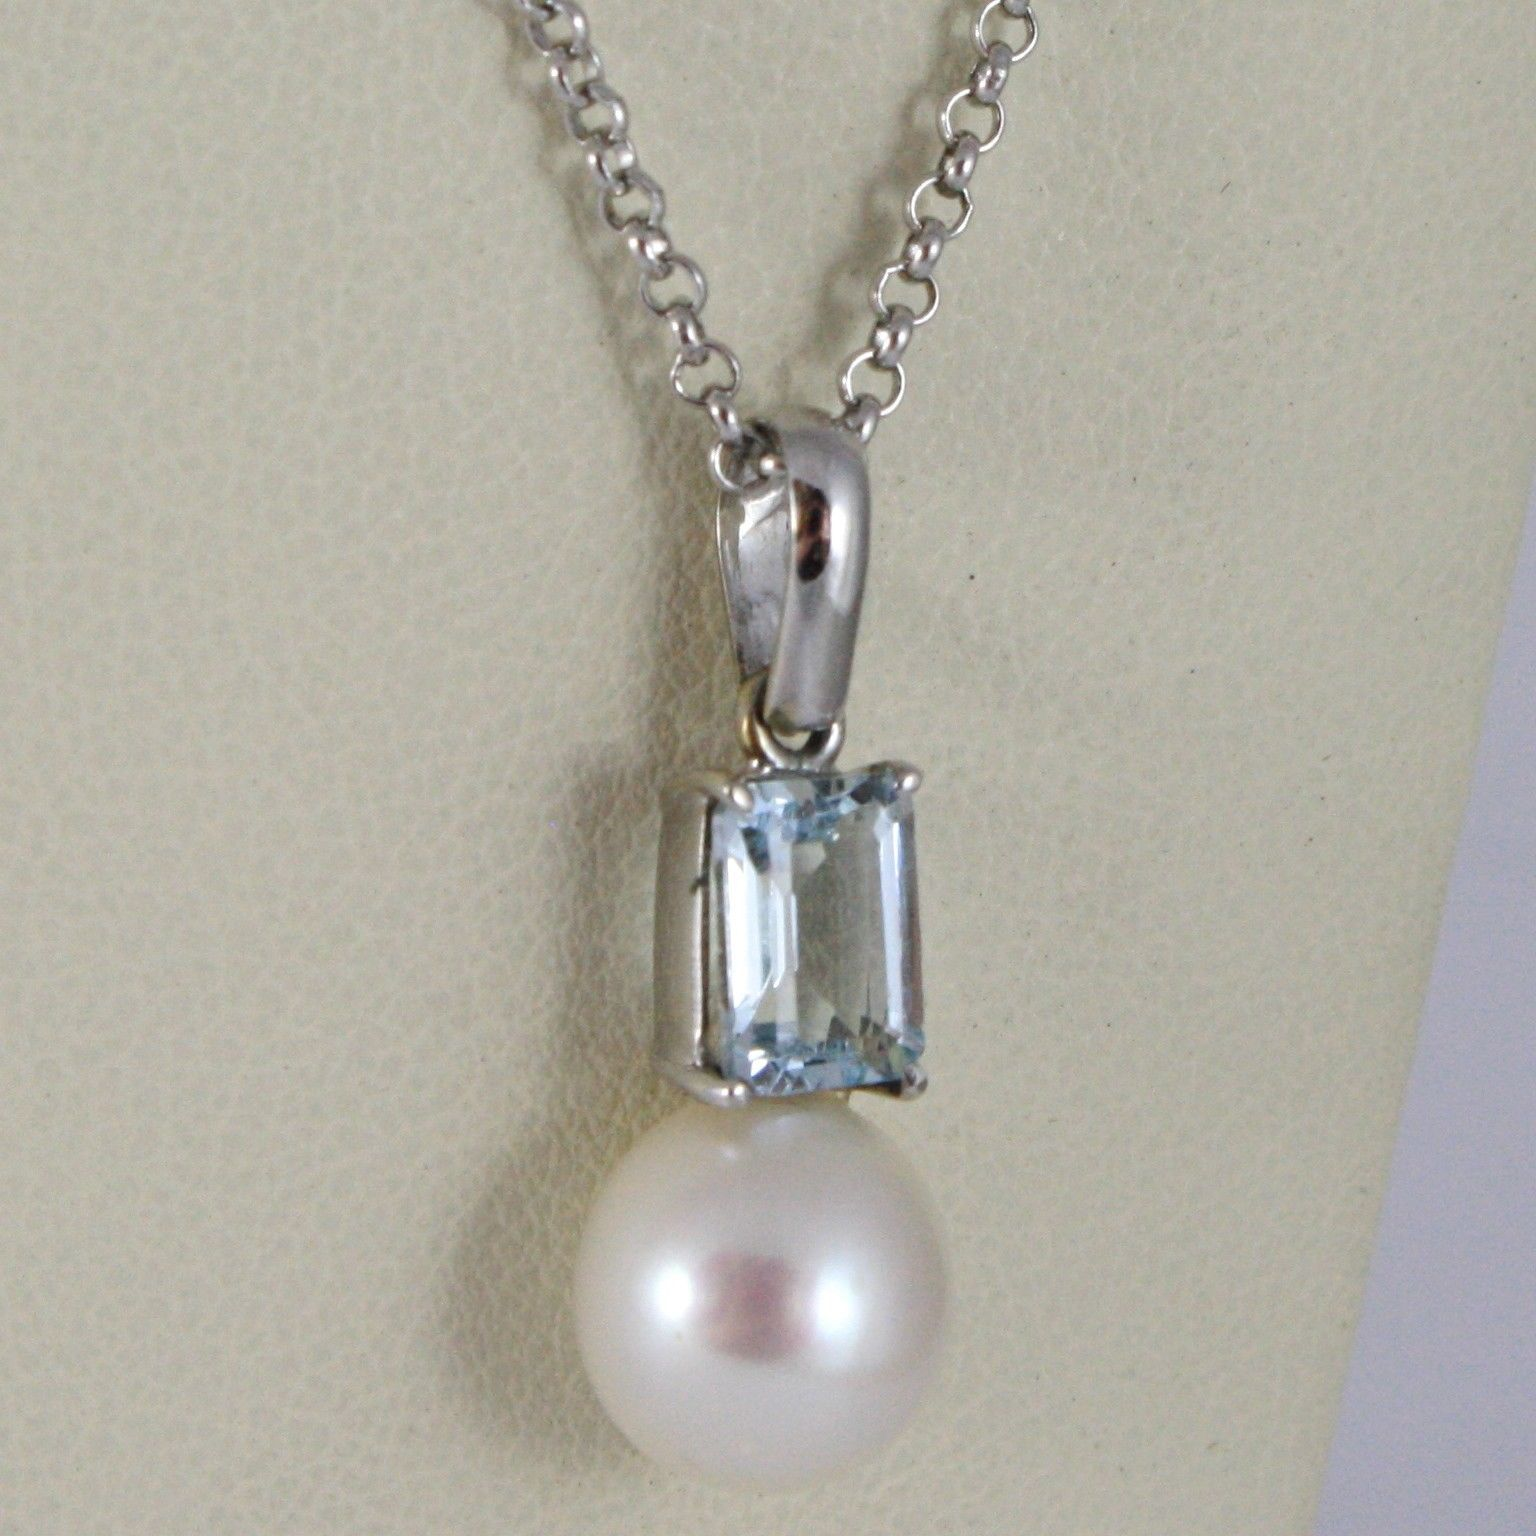 18K WHITE GOLD NECKLACE, EMERALD CUT AQUAMARINE & PEARL PENDANT WITH ROLO CHAIN